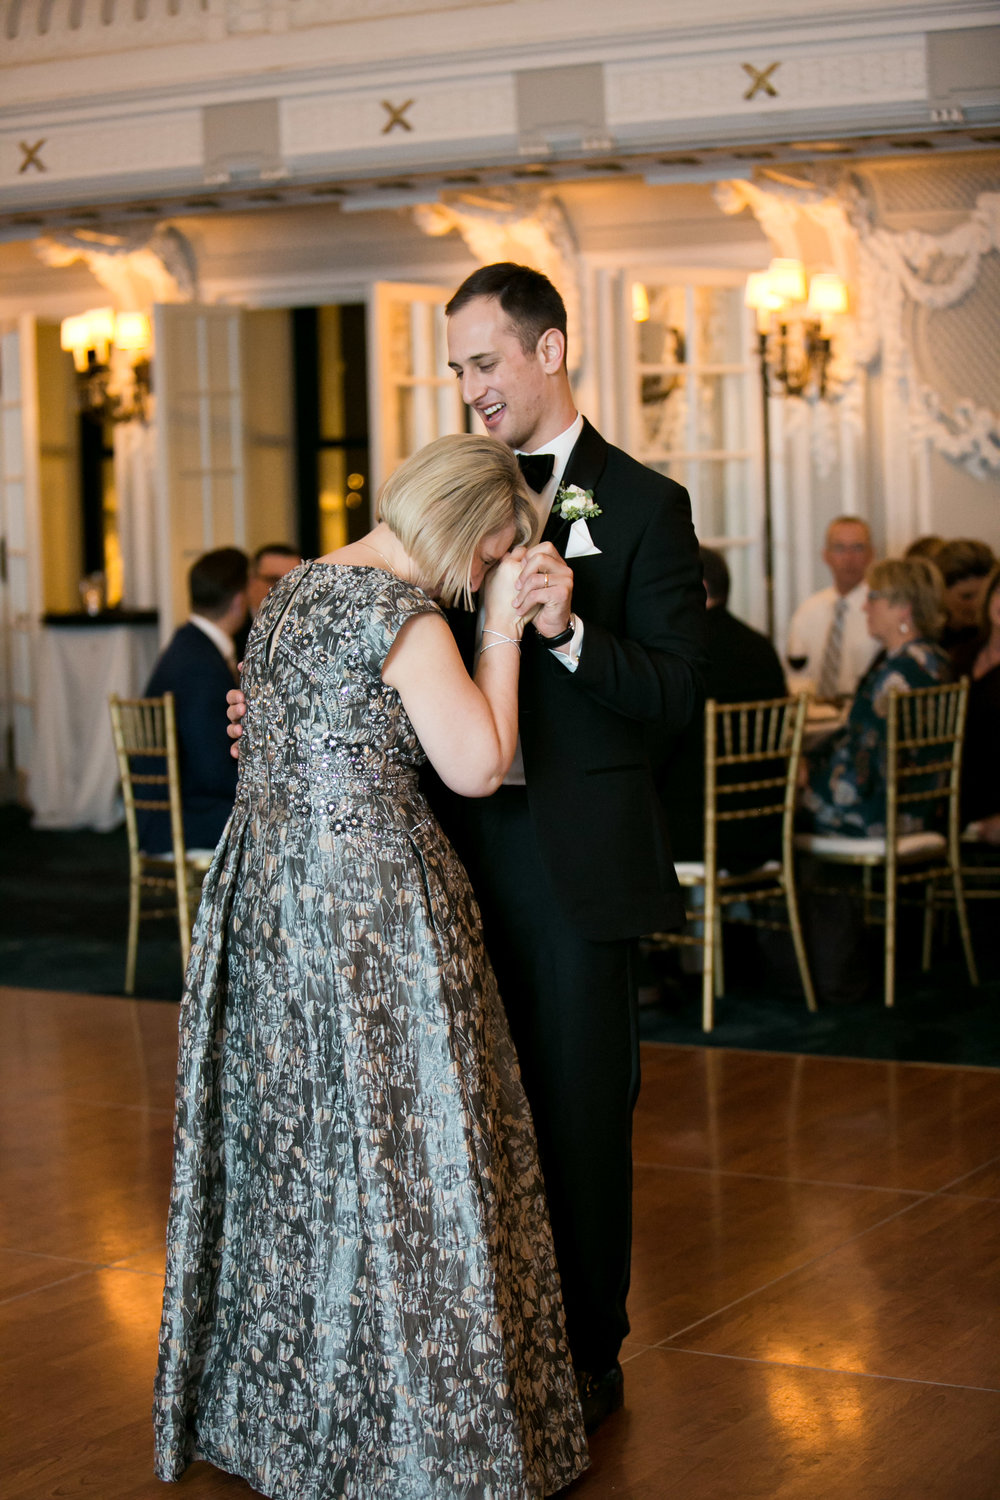 LisaDiederichPhotography_Meghan&Pete_ChicagoWedding_Blog-64.jpg